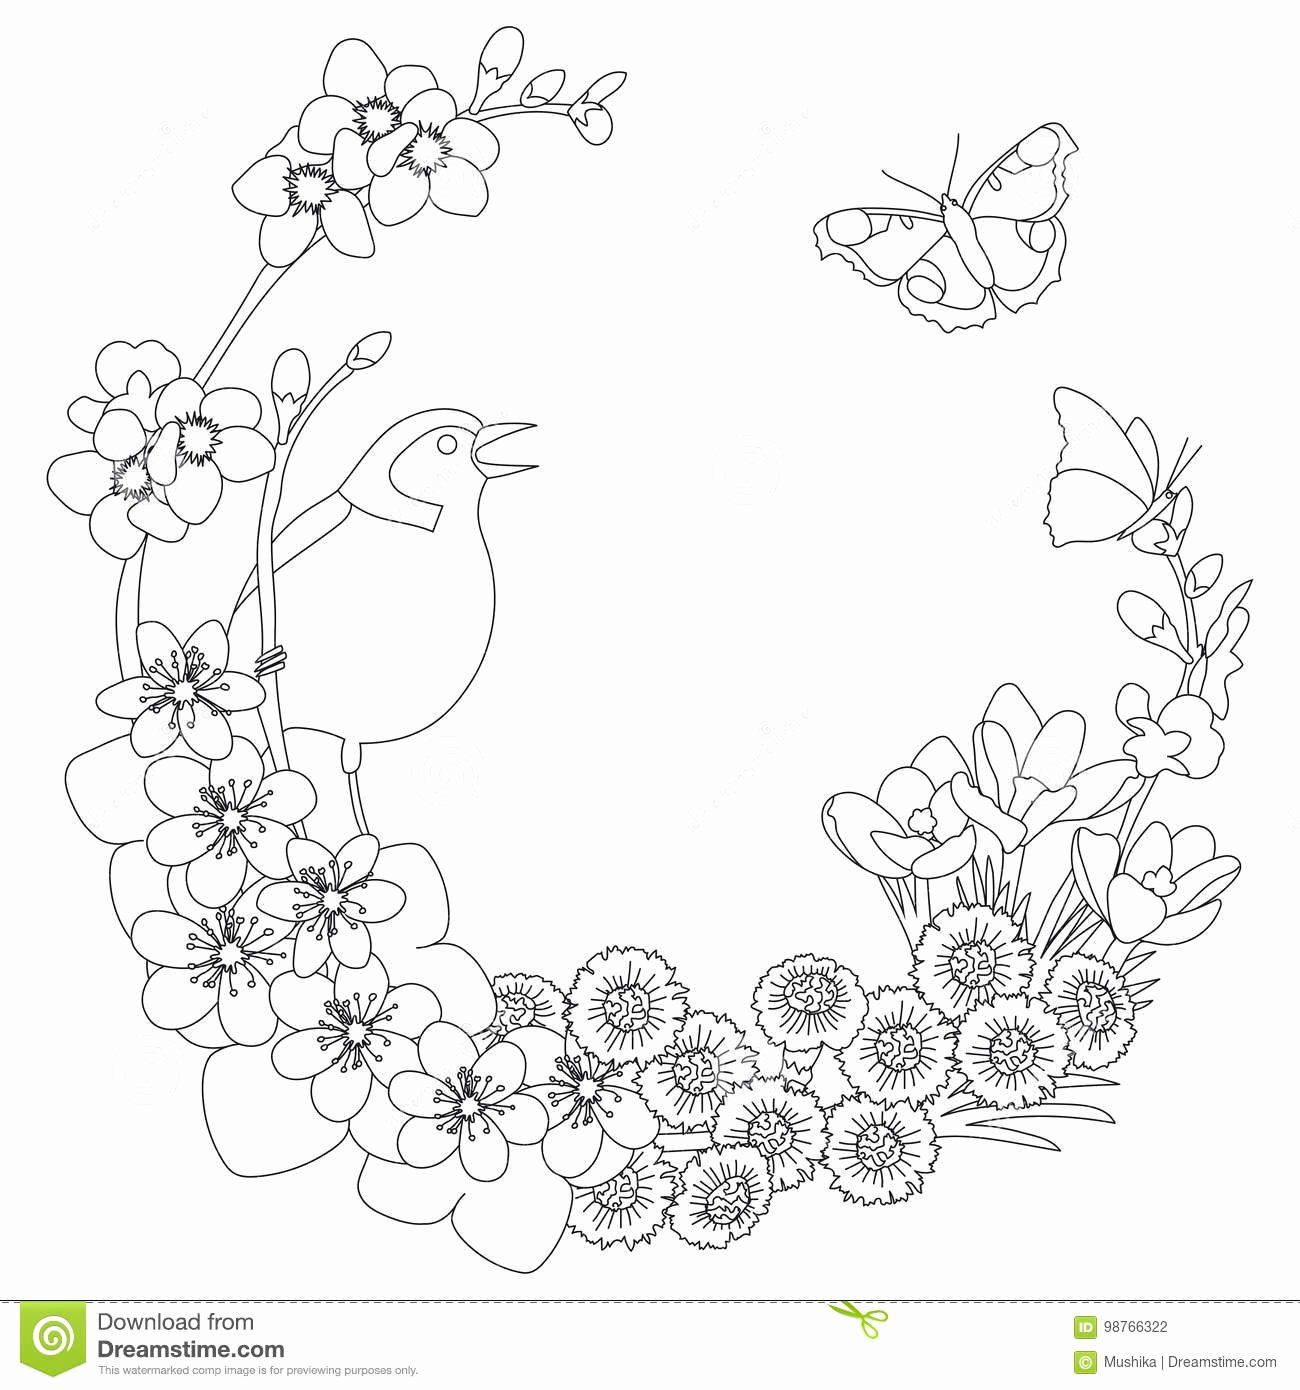 Coloring Book Flower Printable Unique Coloring Page Wreath